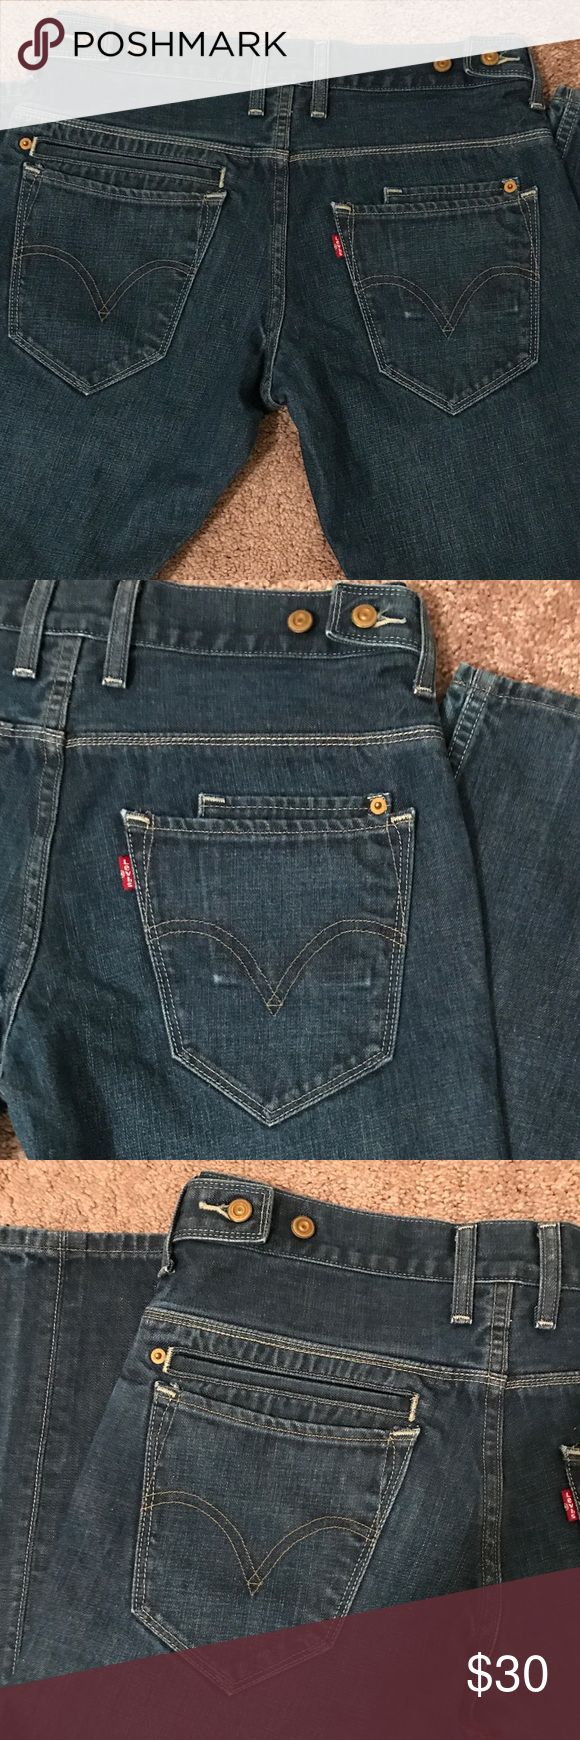 Levi's 511 Skinny Jeans Levi's 511 Skinny Jeans. Great Condition. Amazing quality from Levi's! Reasonable offers gladly accepted! #jeans #levis #levisskinny #levisjeans #31x30 Levi's Jeans Skinny